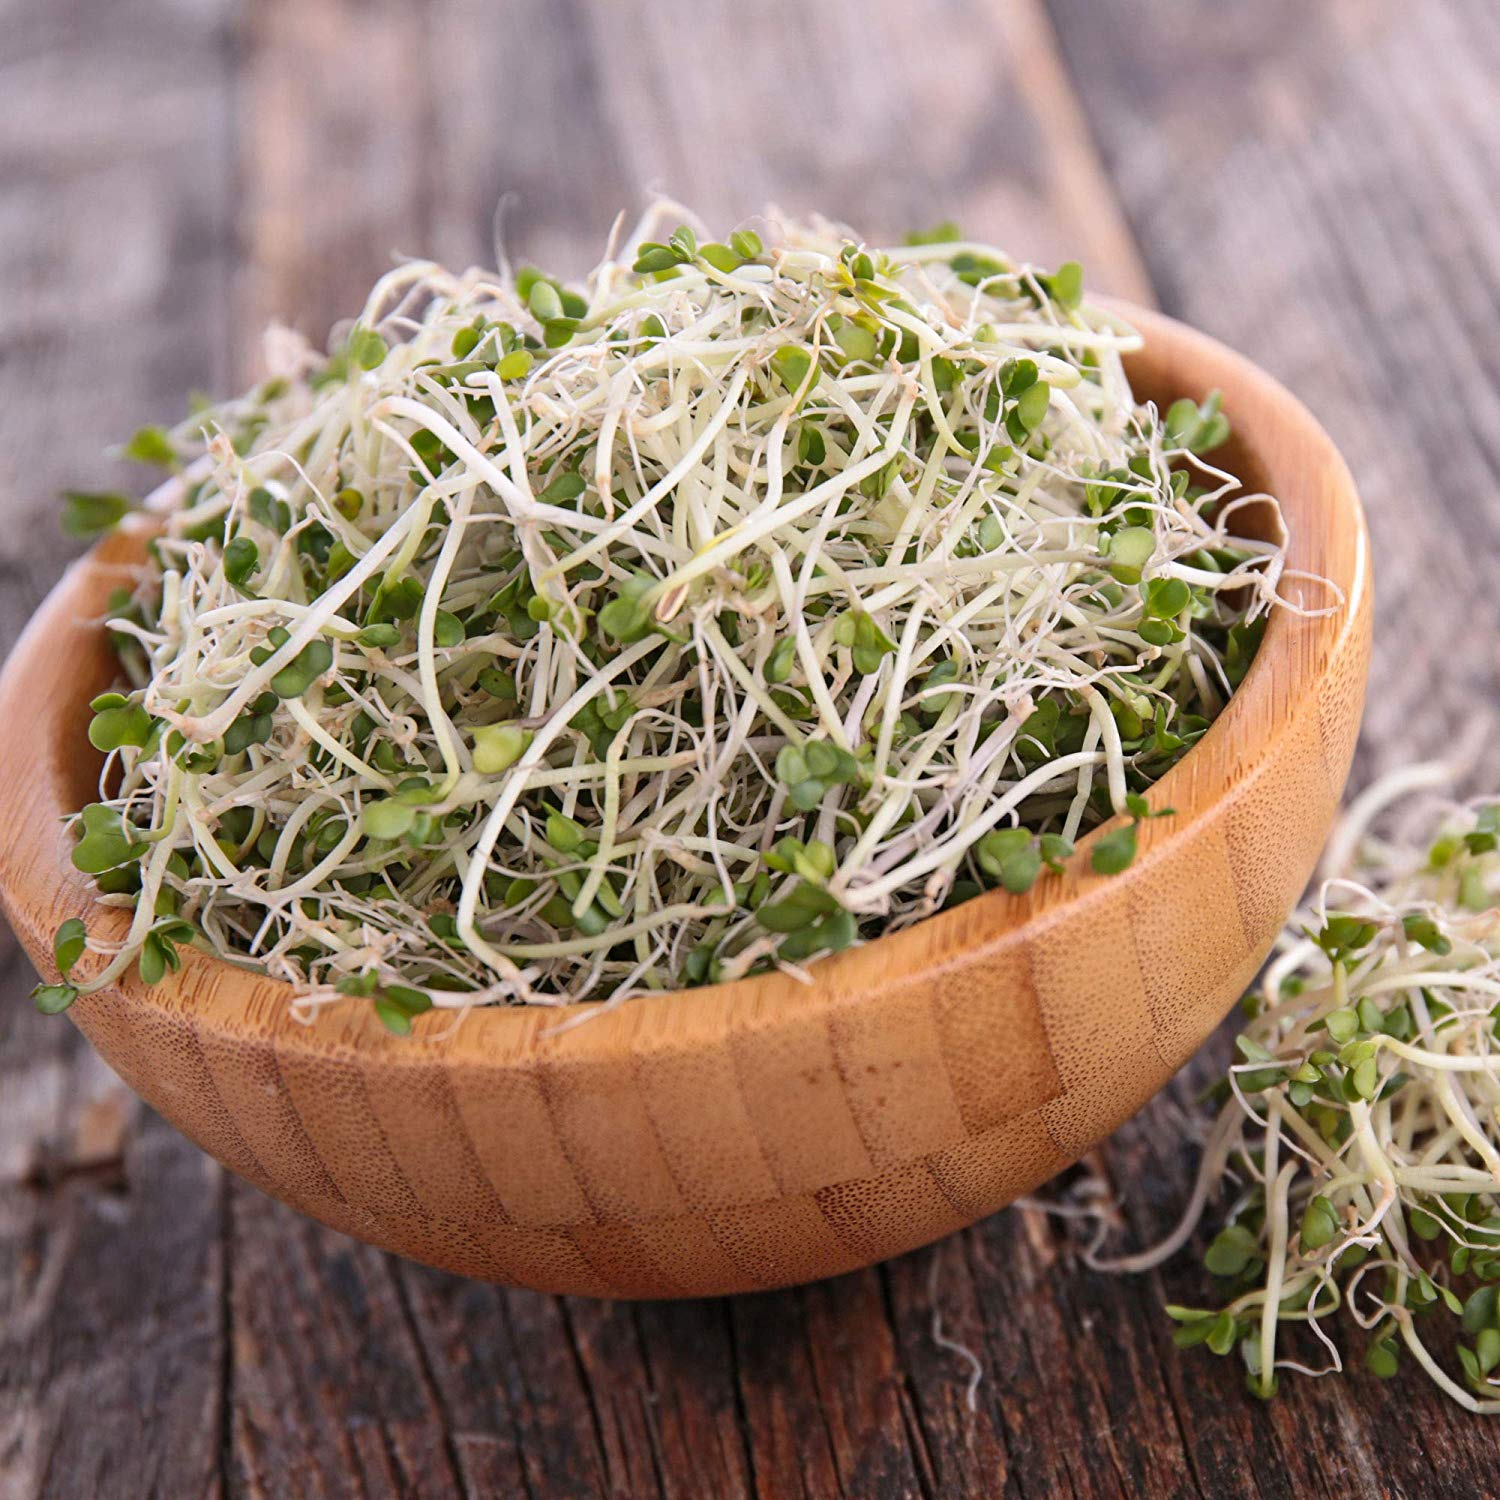 broccoli sprouts idaho